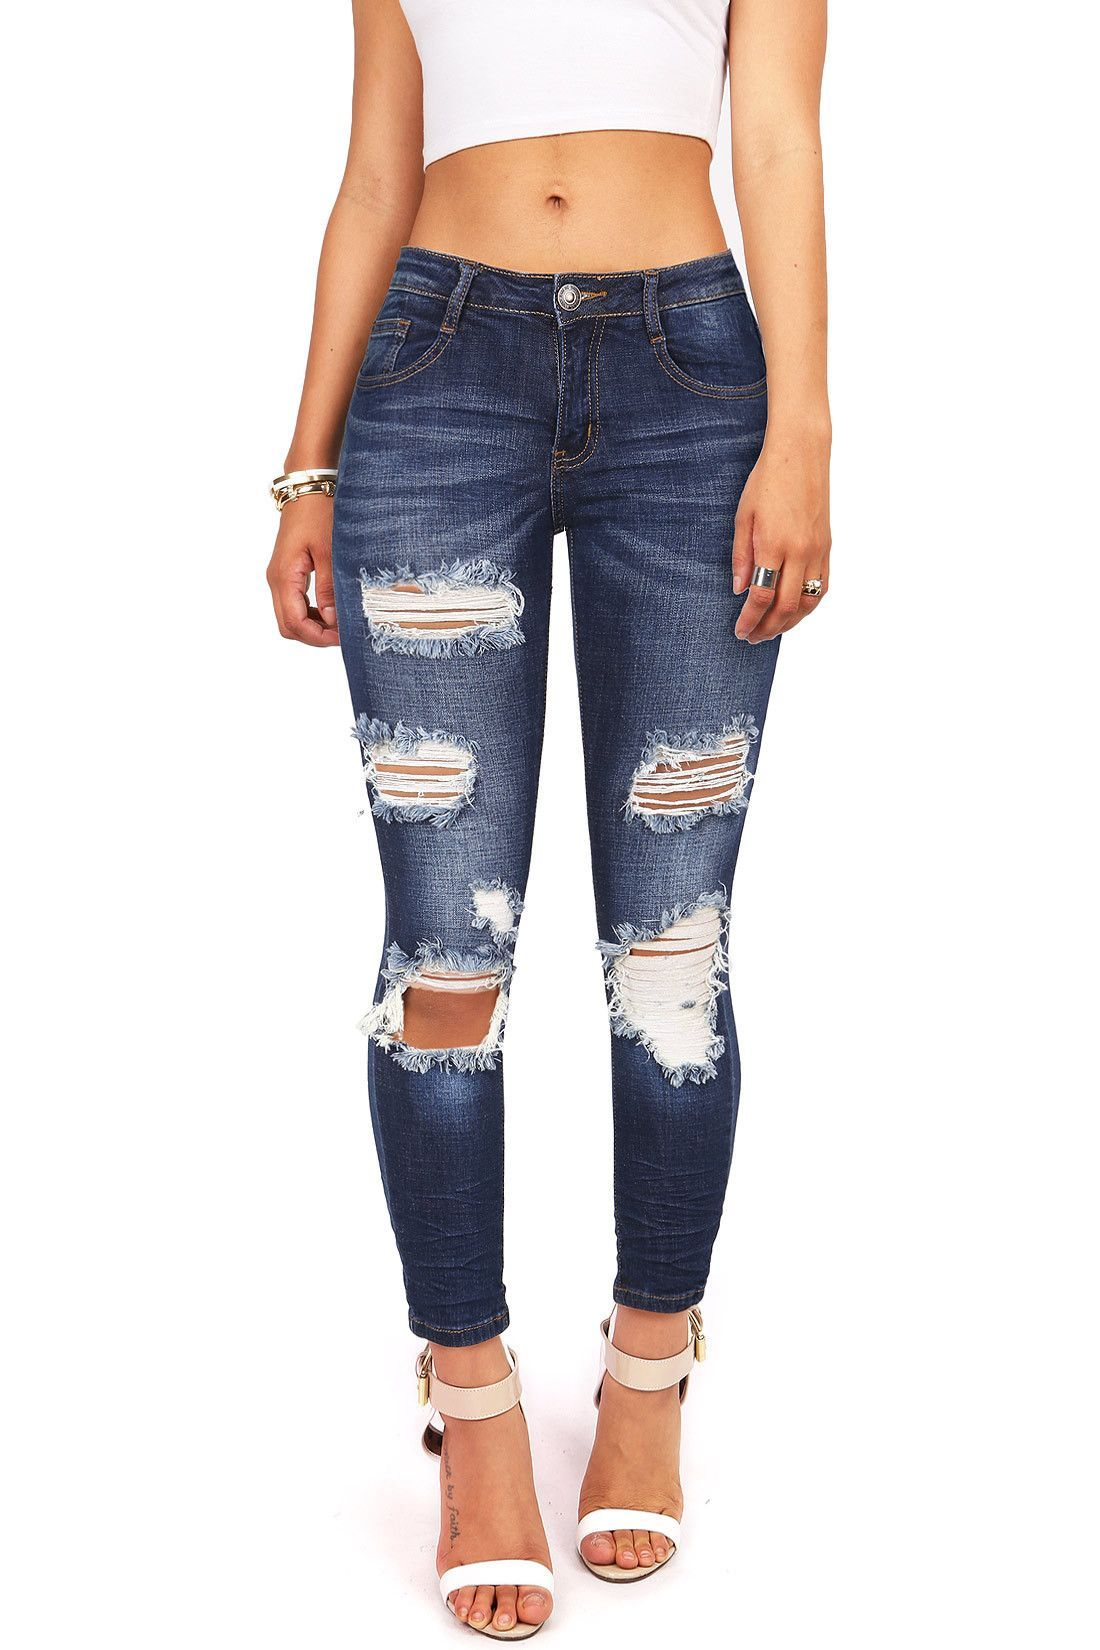 Renegade Ankle Skinny Jeans Cute Ripped Jeans Ripped Jeans Diy Ripped Jeans